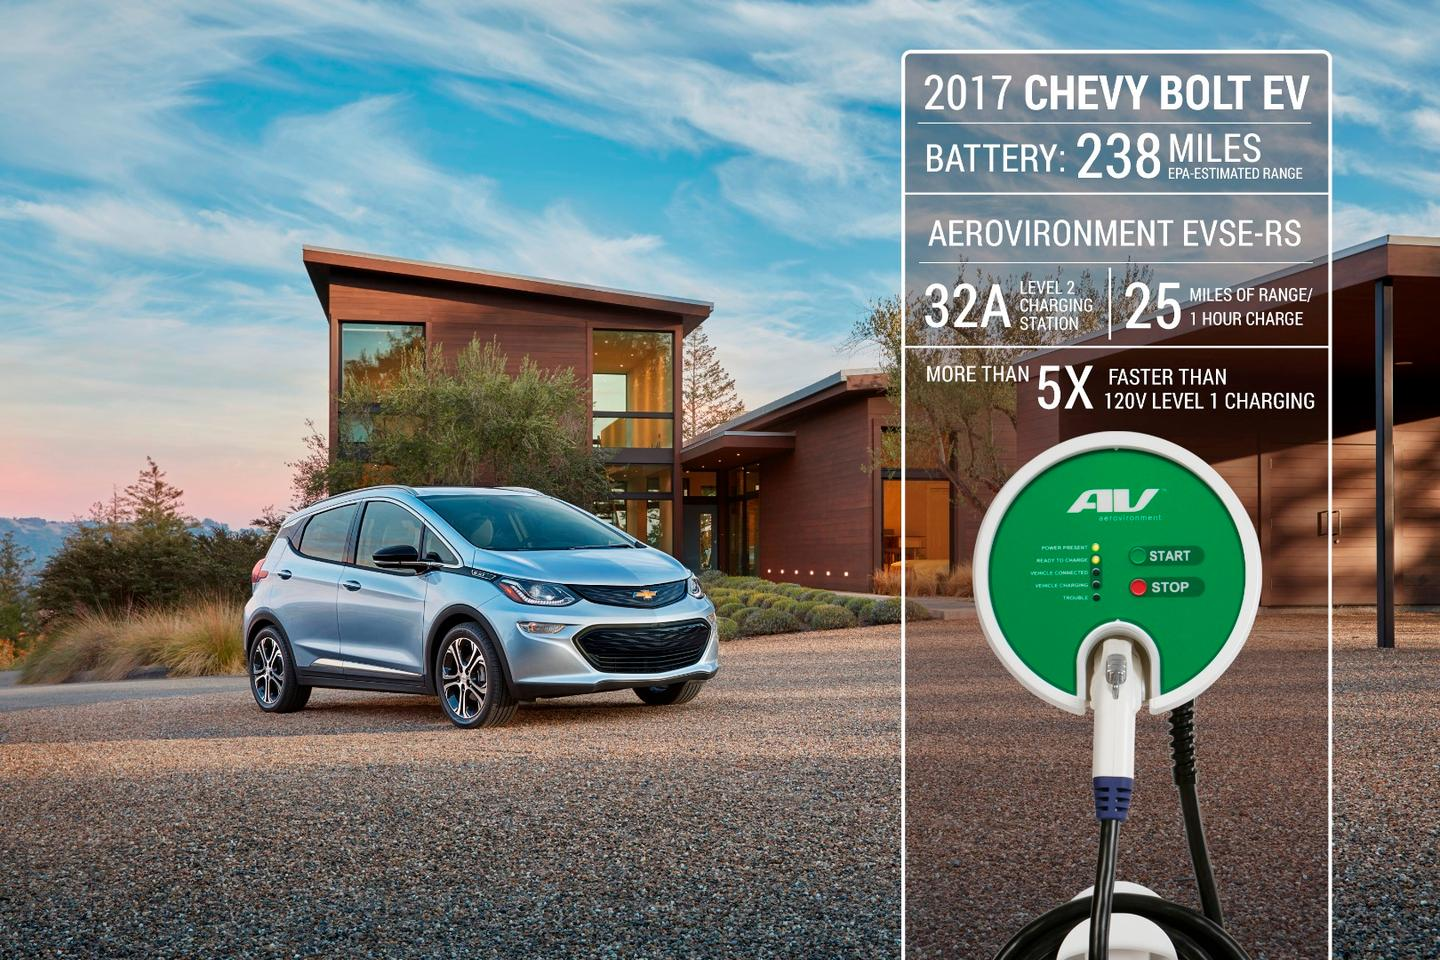 Chevrolet has given AeroVironment the nod for its Bolt home charging station